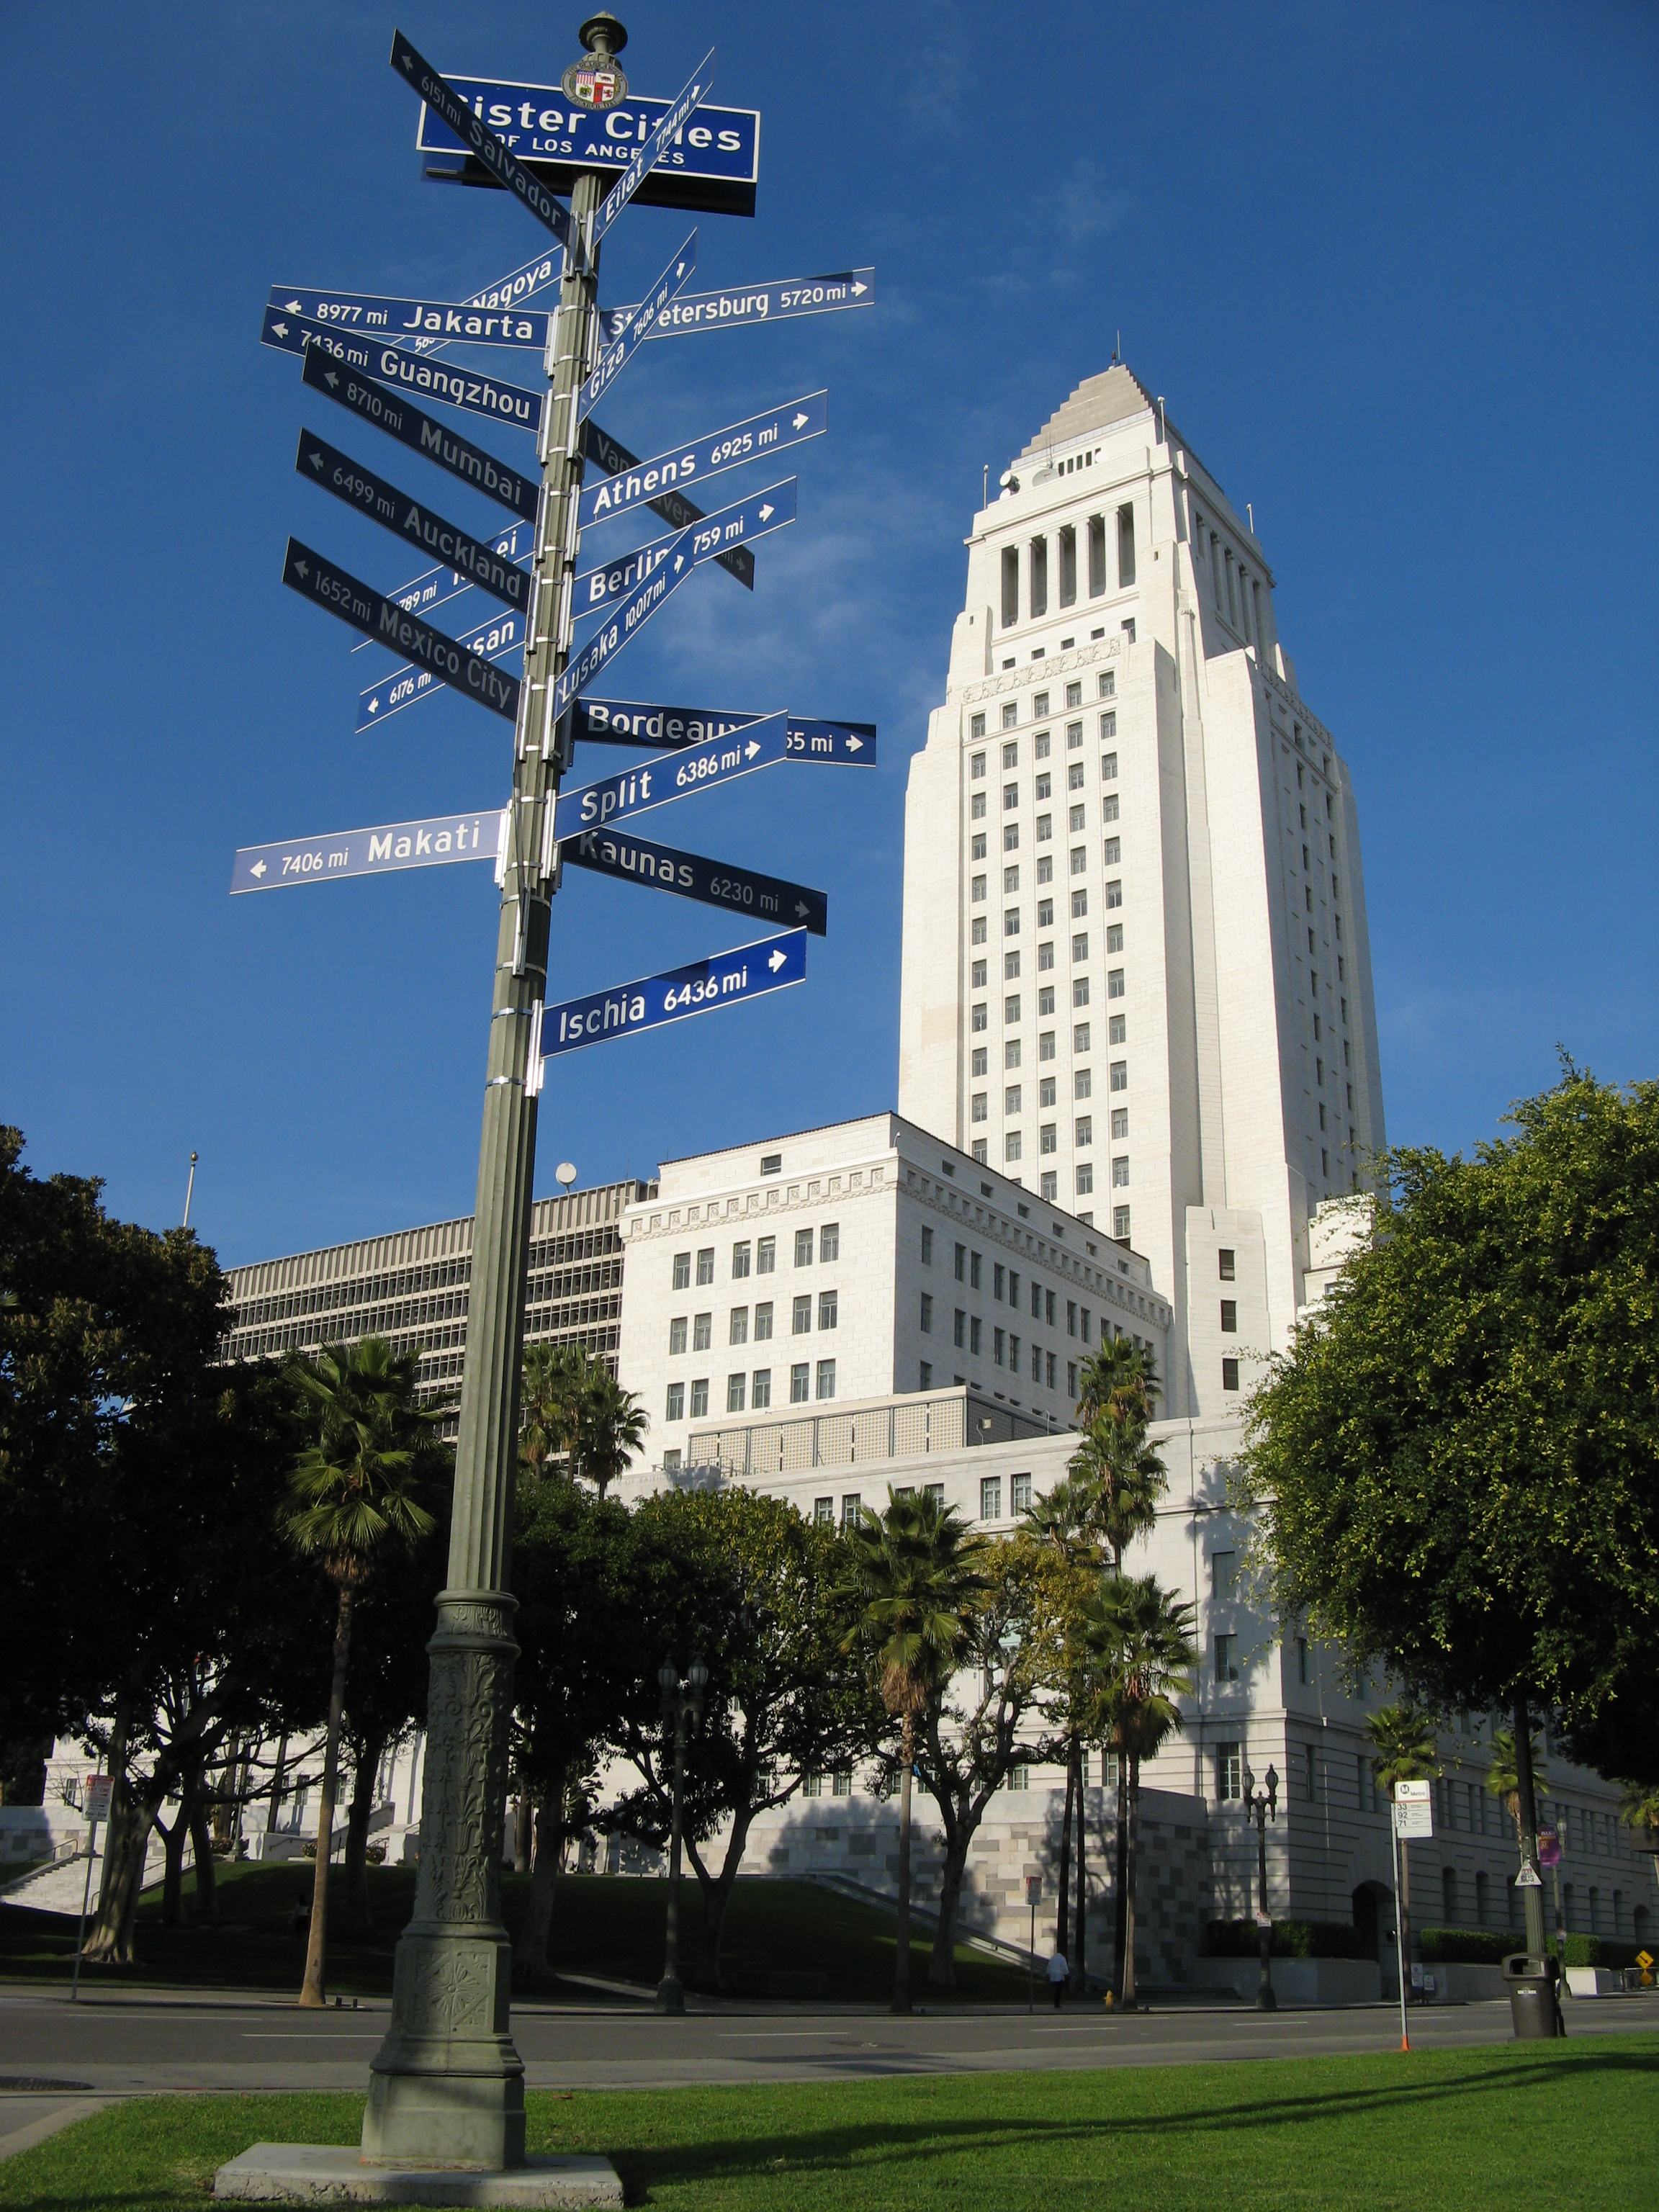 Los Angeles City Hall with sister cities